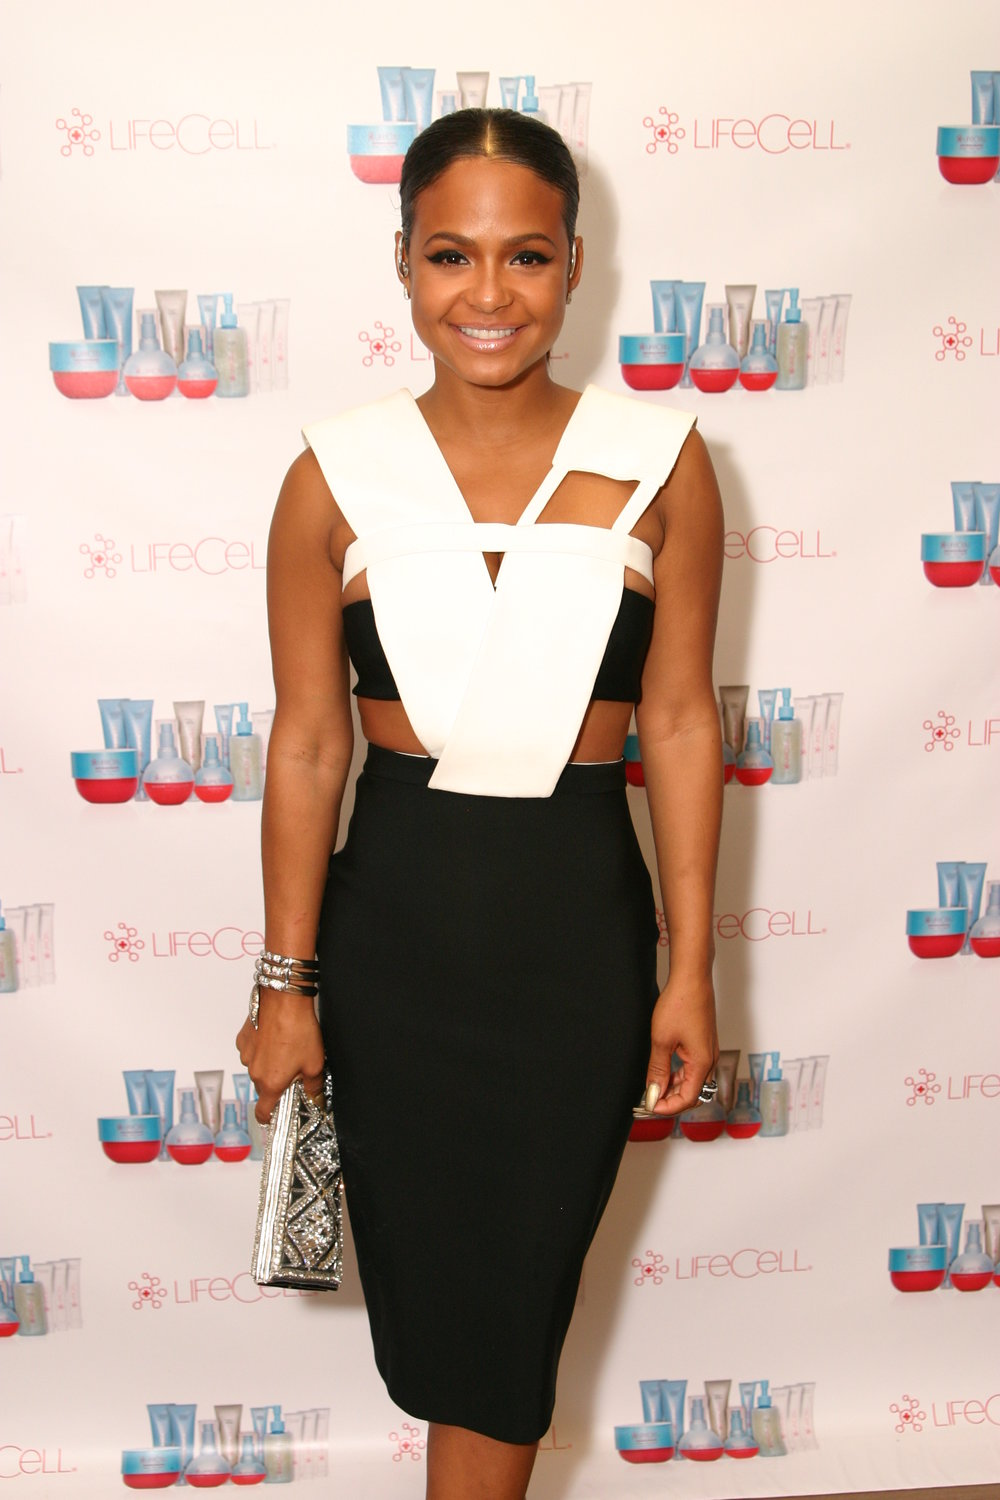 Christina Milian Shows Her Support for LifeCell! Courtesy Photo